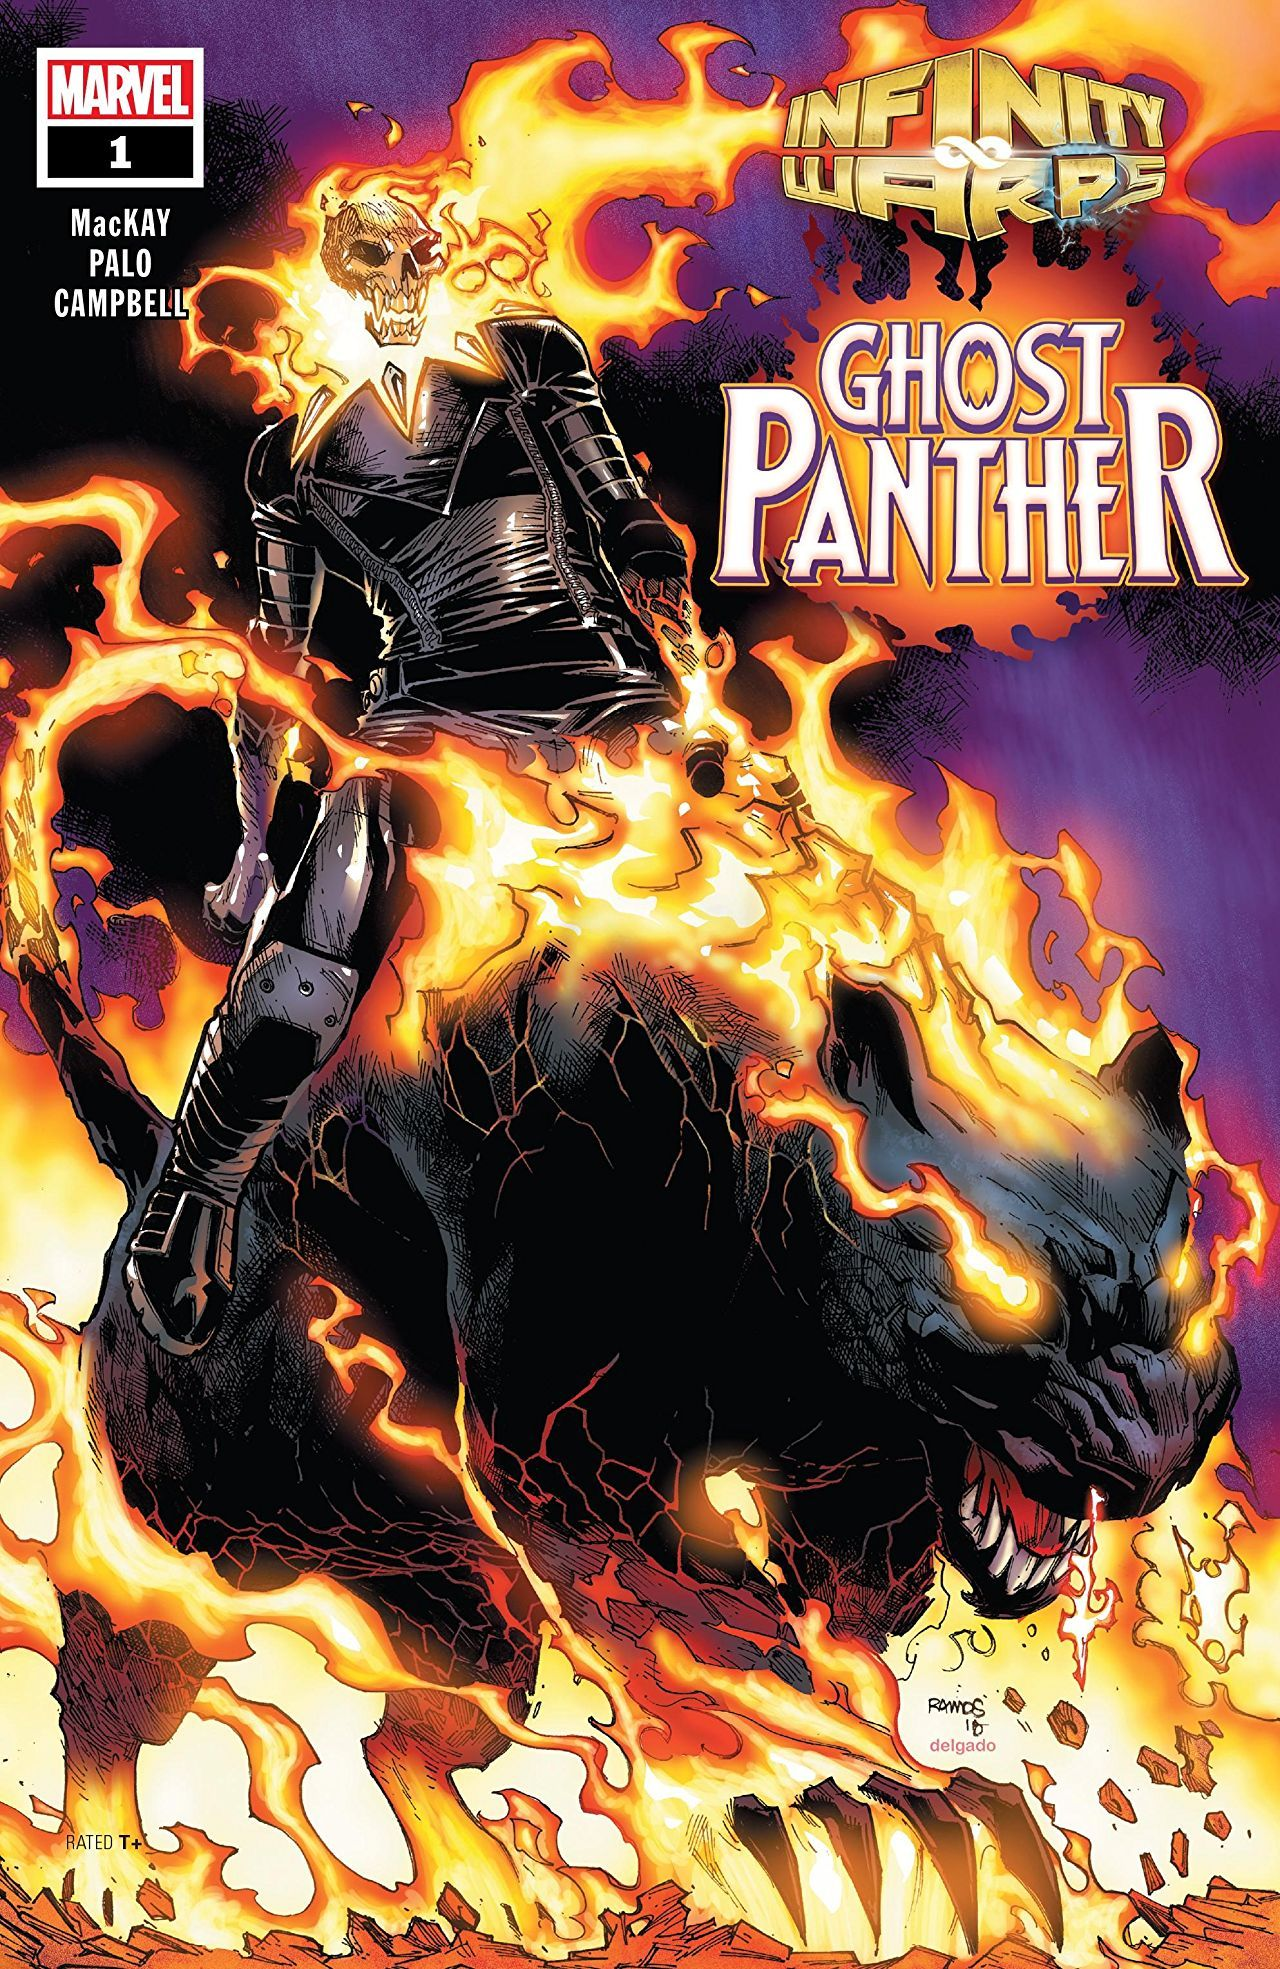 Infinity Wars: Ghost Panther Vol 1 1 | Marvel Database | FANDOM